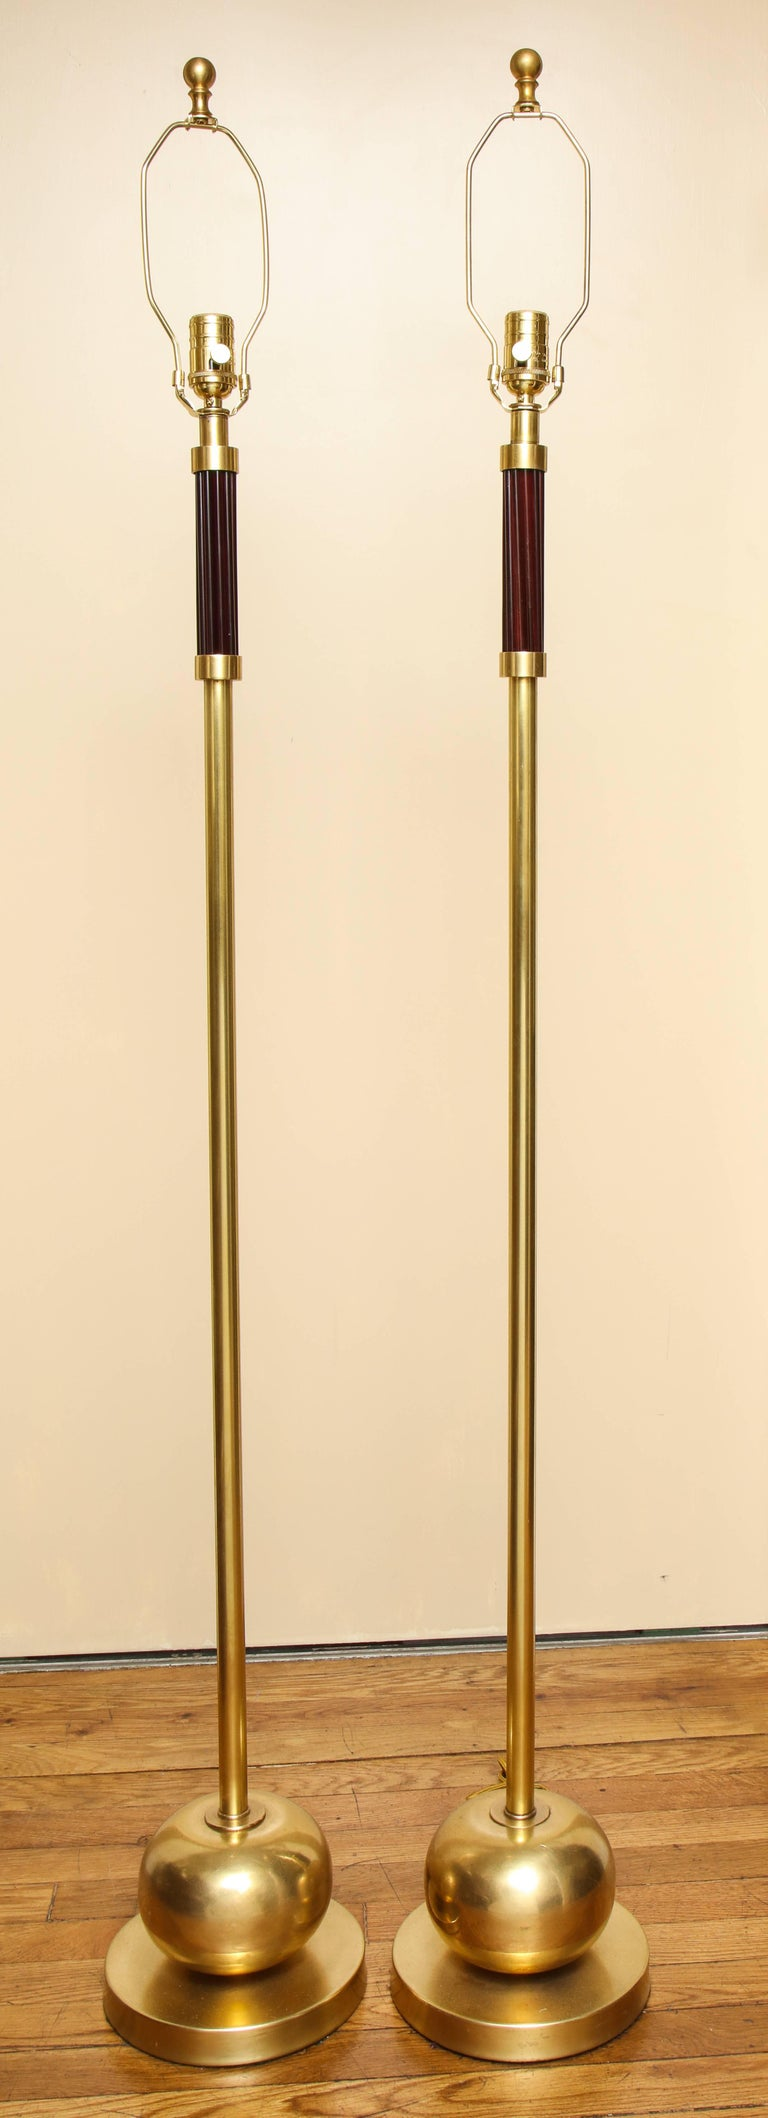 Pair of French Art Deco Standing Lamps 5